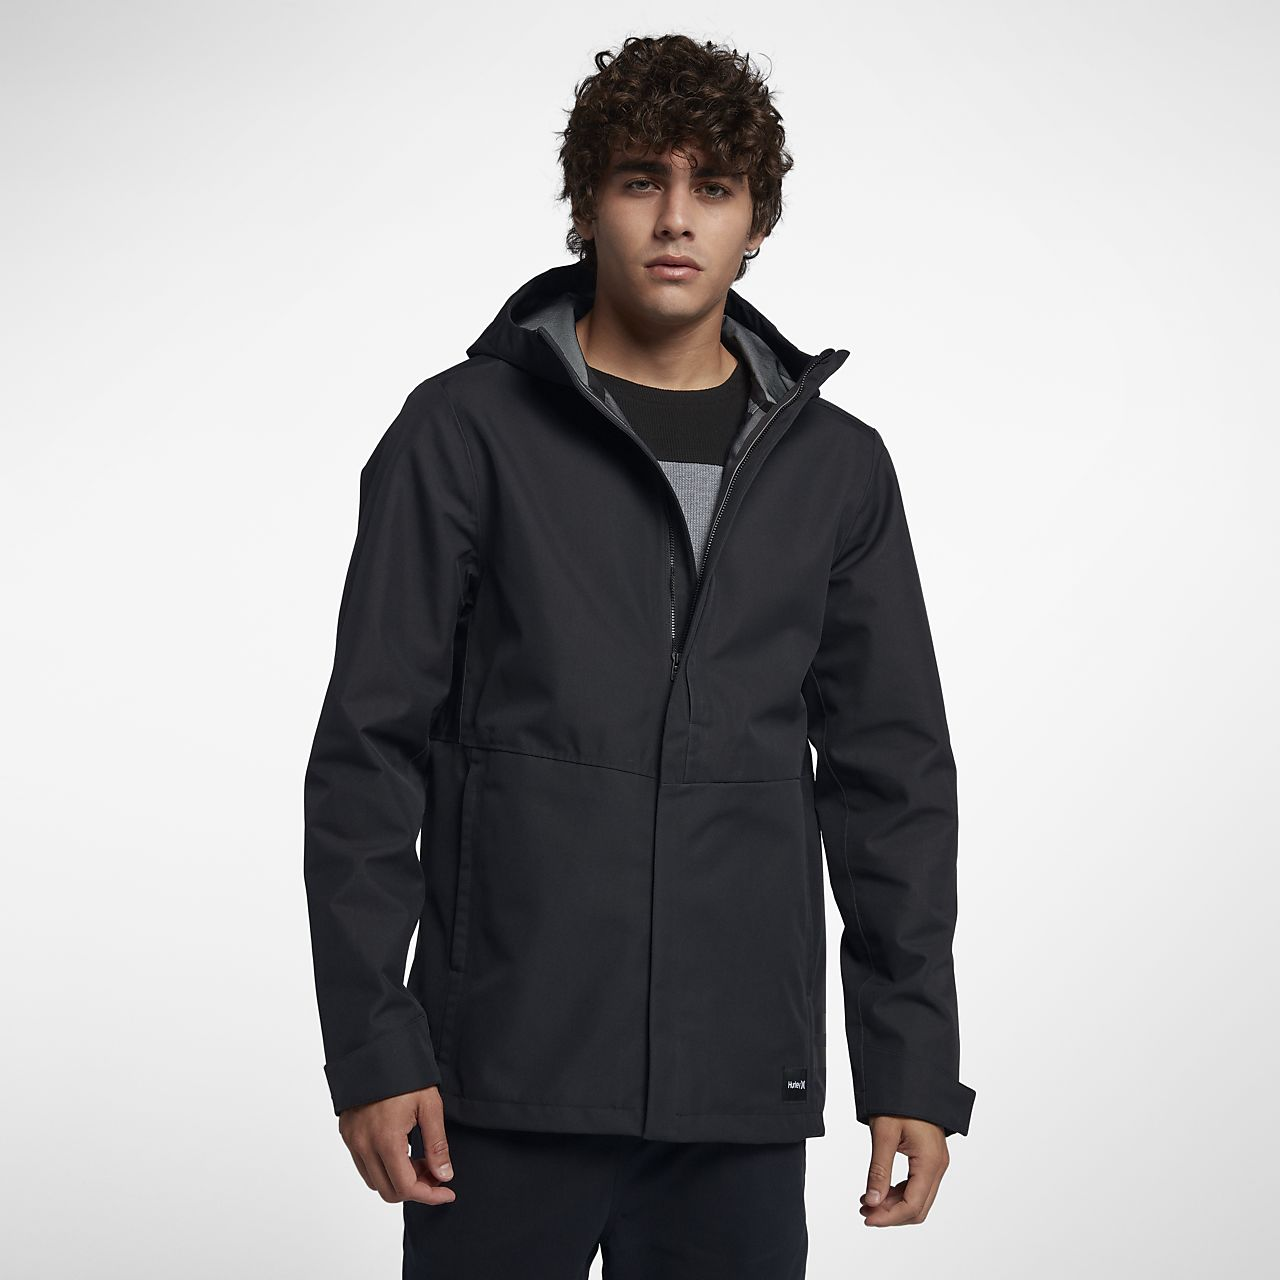 4e39185b6ddf Hurley Outrider 3-Layer Shell Men s Hooded Jacket. Nike.com